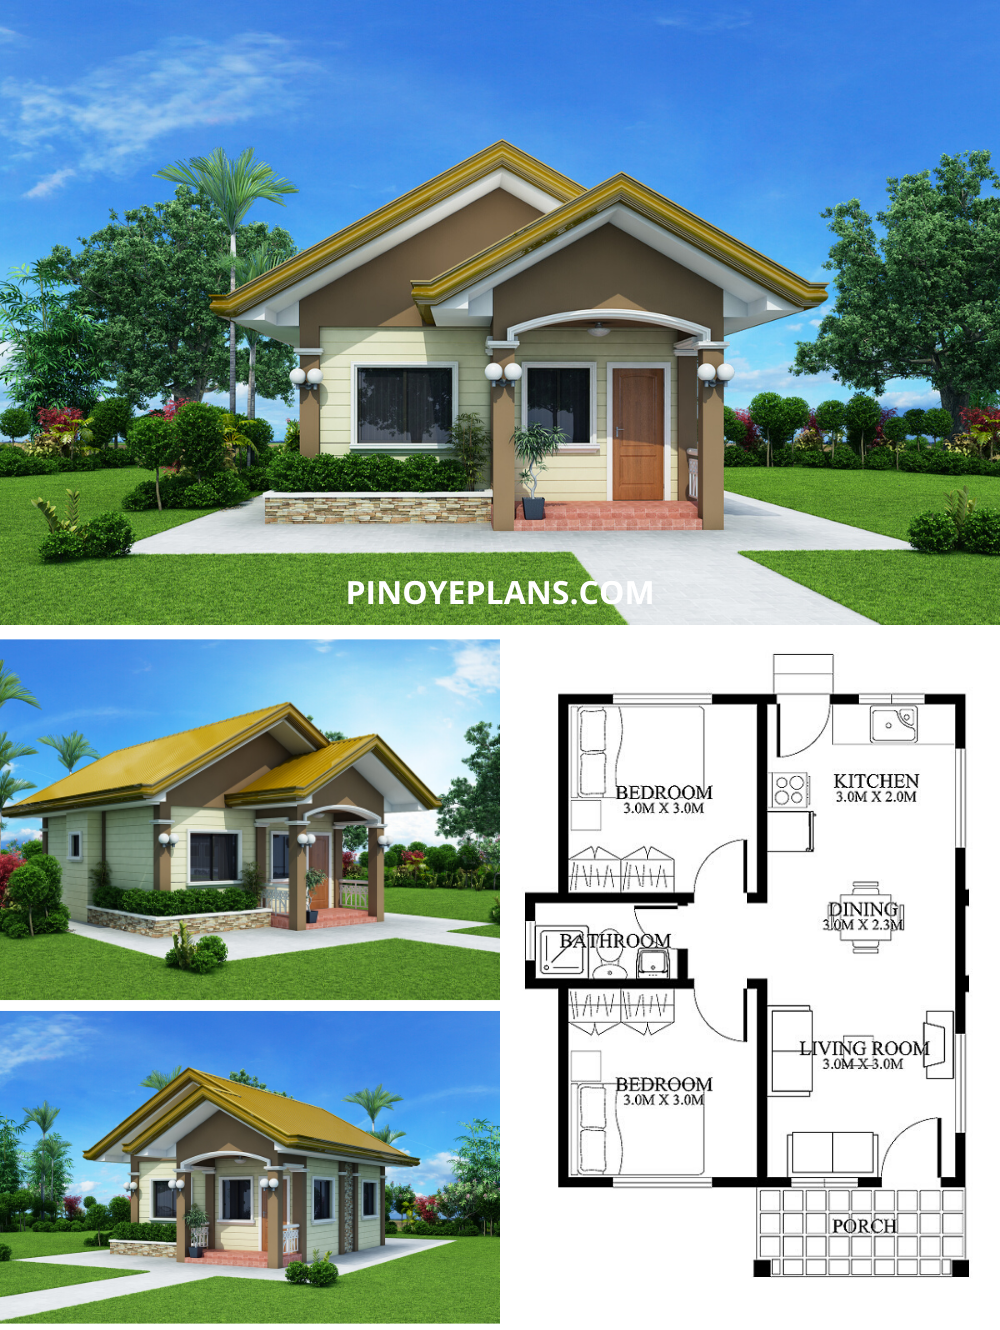 Small House Designs Shd 2012001 Pinoy Eplans Philippines House Design Small House Model Small House Design